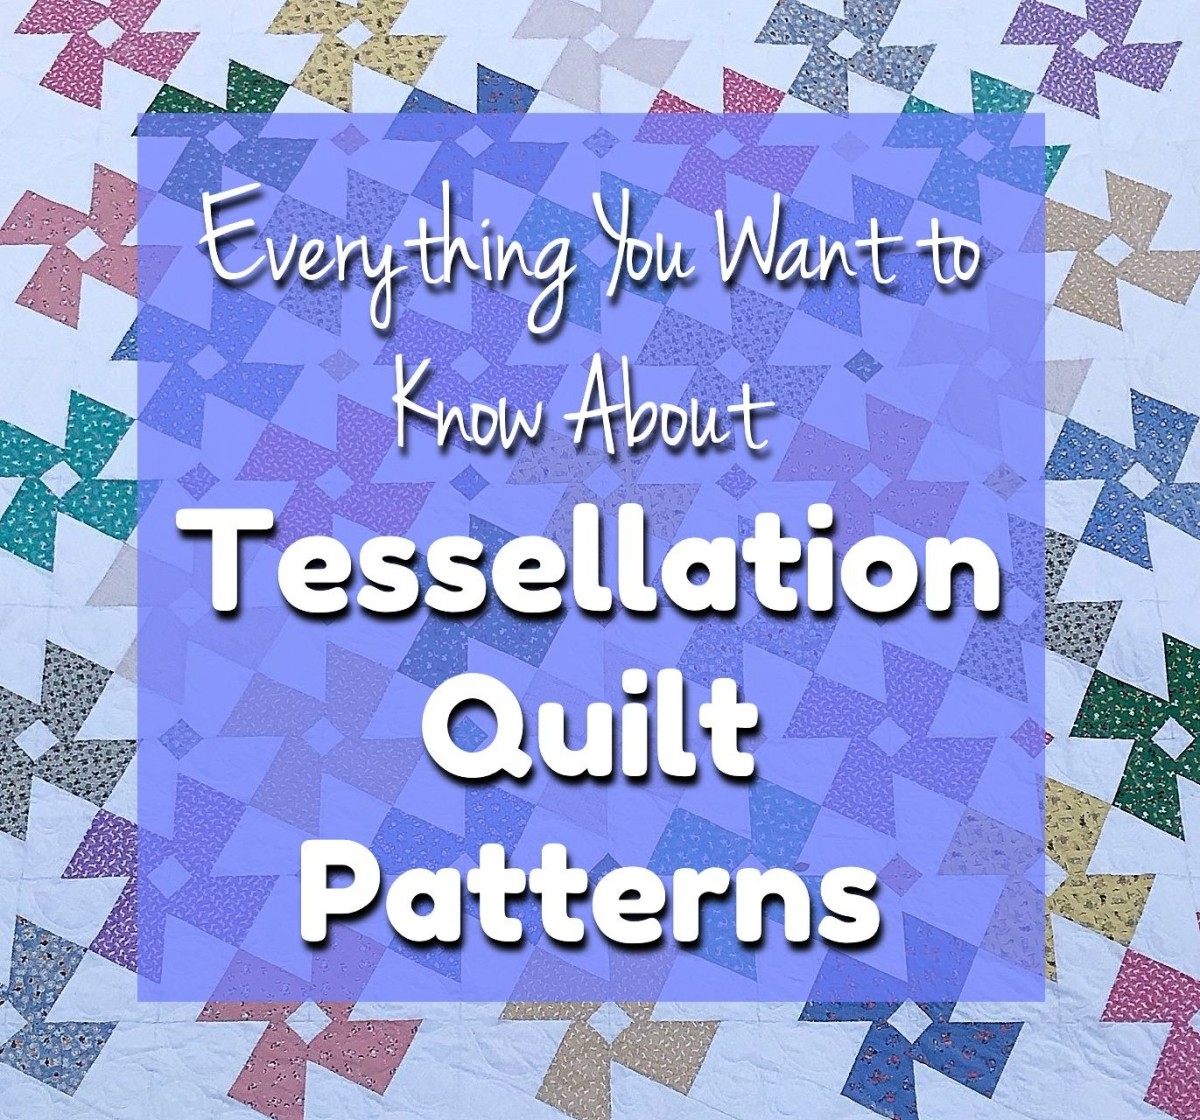 Tessellation Quilt Patterns